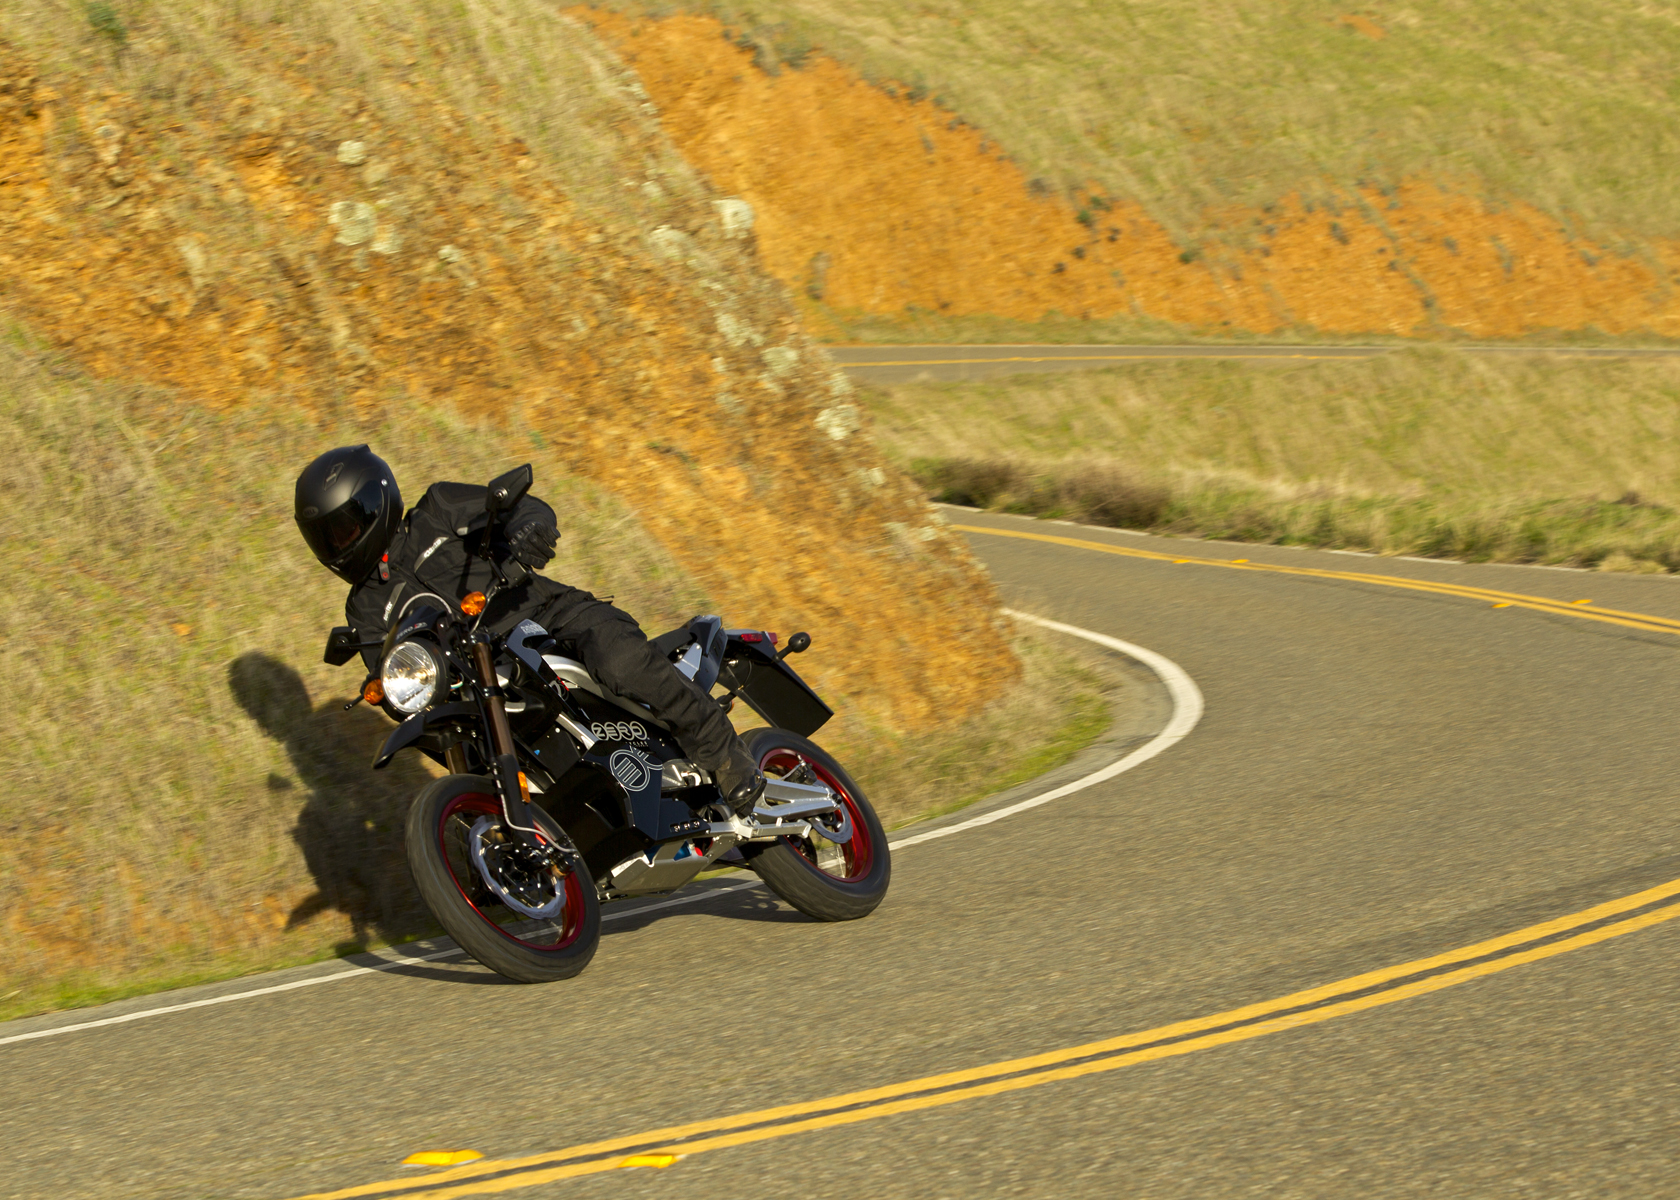 2011 Zero DS Electric Motorcycle: Yellow Hills, Lean Right